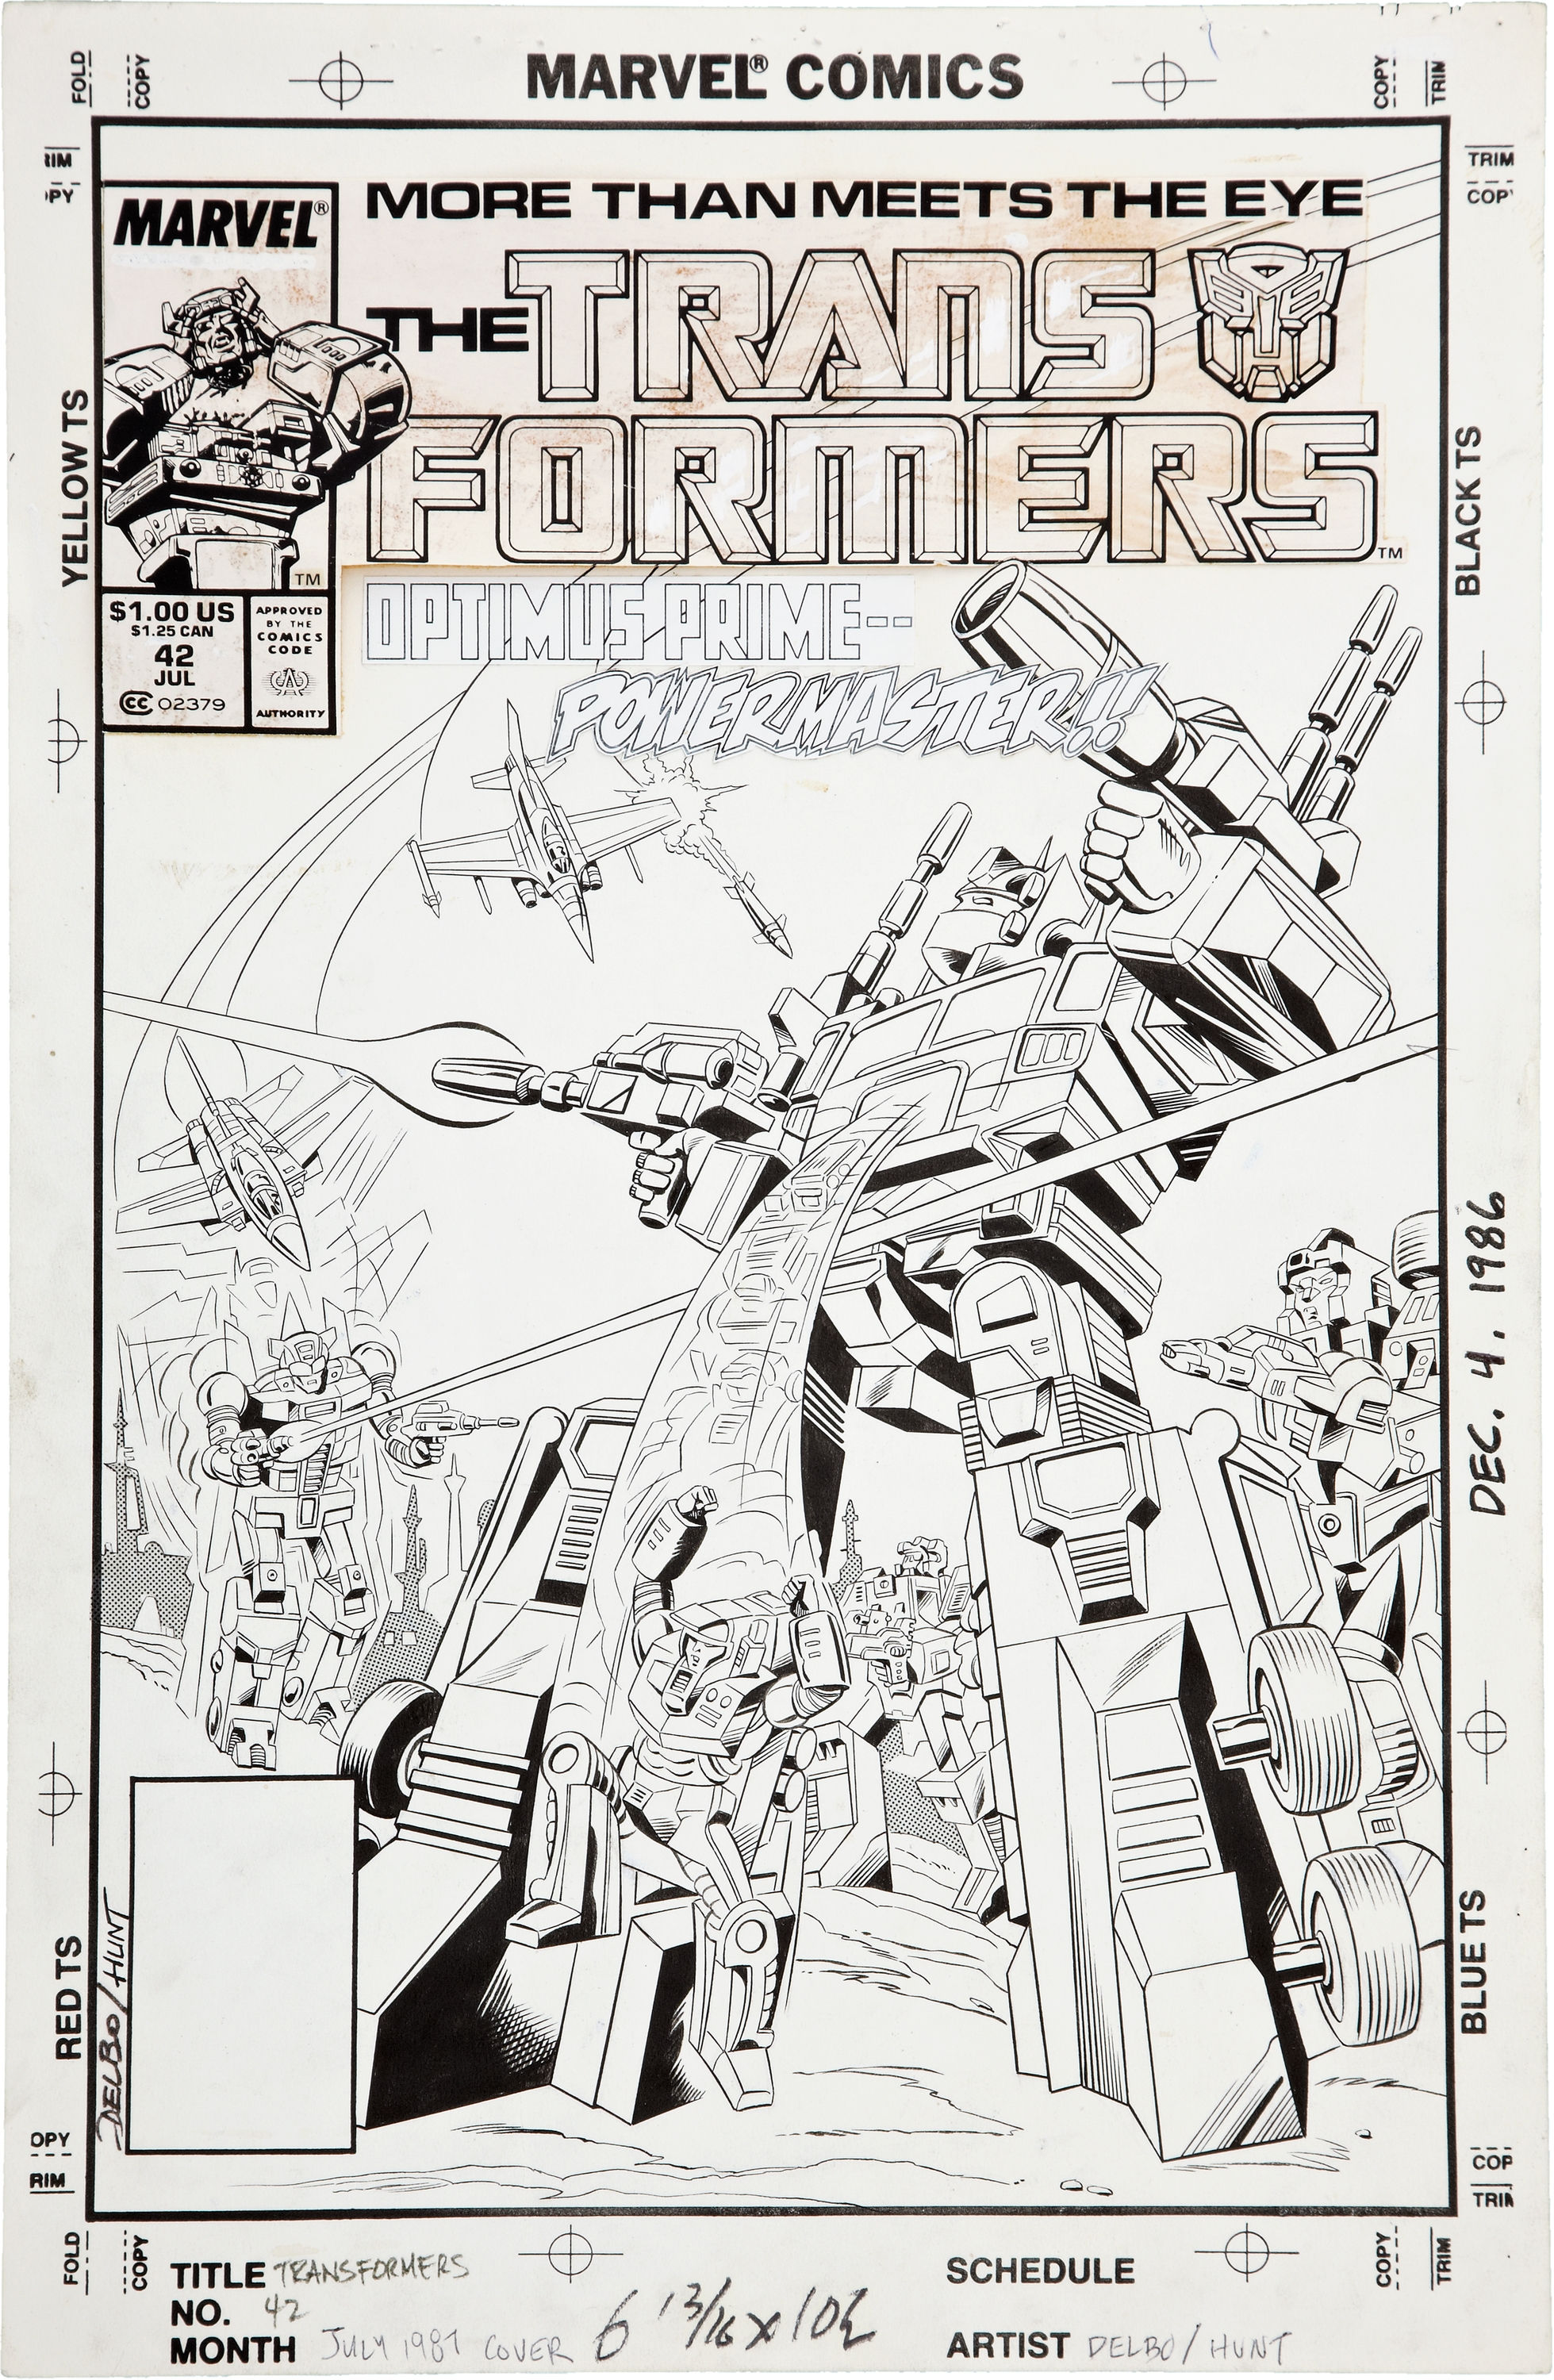 Be Nelson Yomtov! (Colorists, Tackle an Original Transformers Marvel Comics Page!)-jose-20delbo-20transformers-2042-20page-2005.jpg